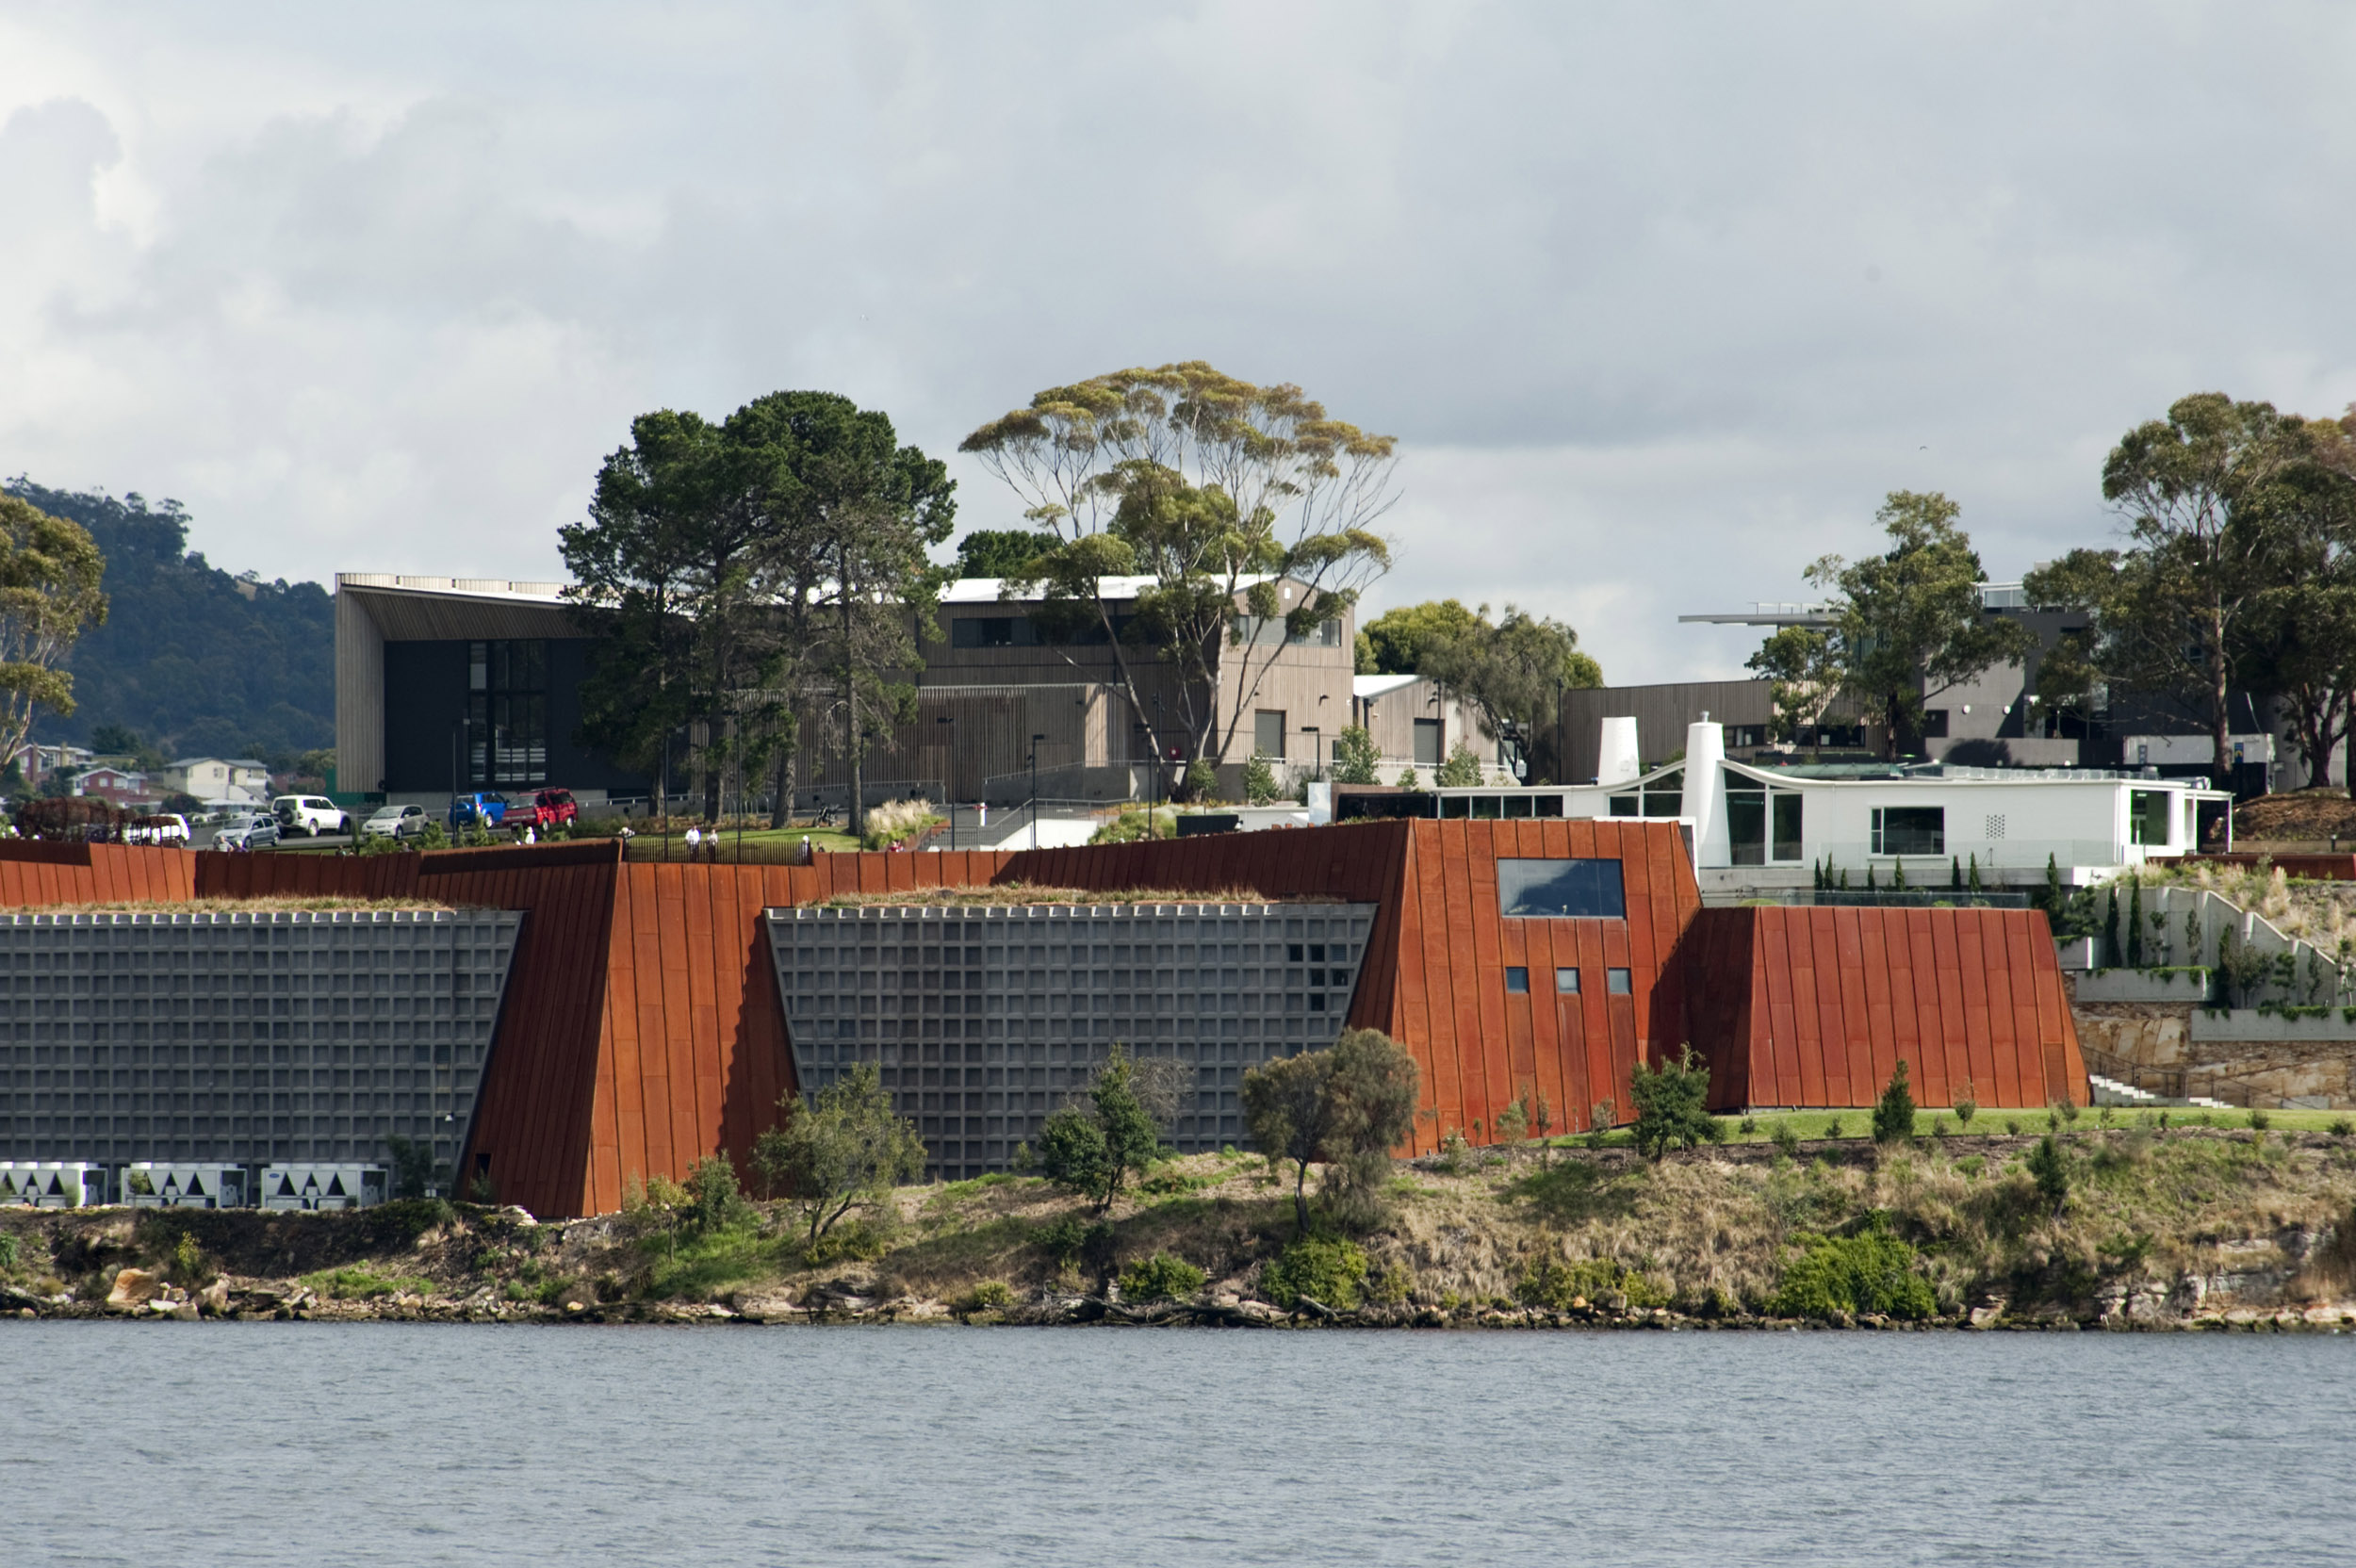 The Mona art gallery building exterior and surrounding river in Hobart, Australia.